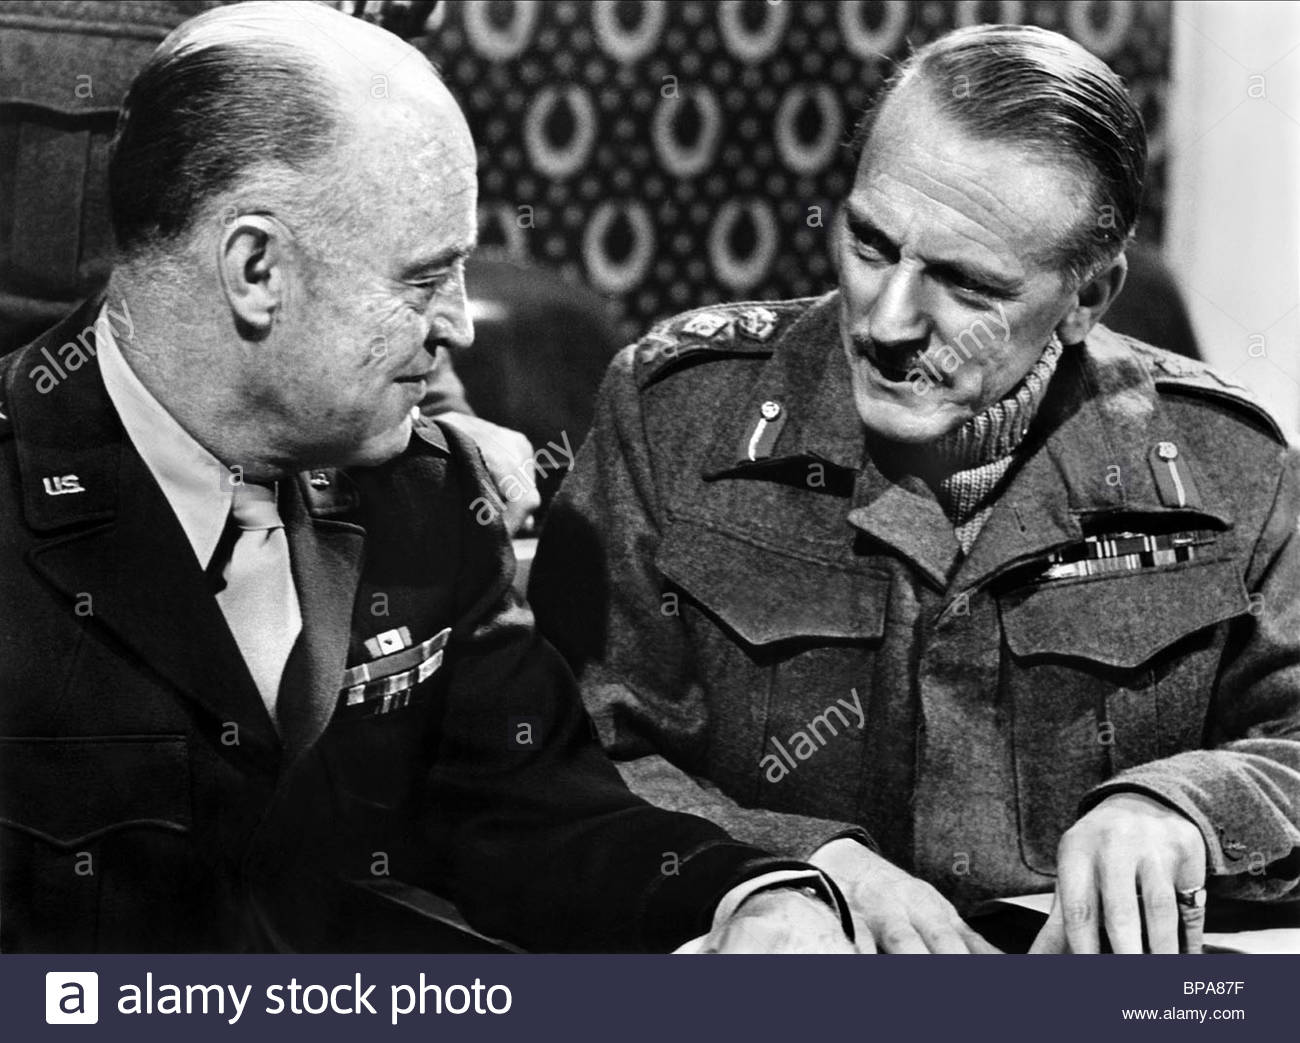 HENRY GRACE, TREVOR REID, THE LONGEST DAY, 1962 - Stock Image